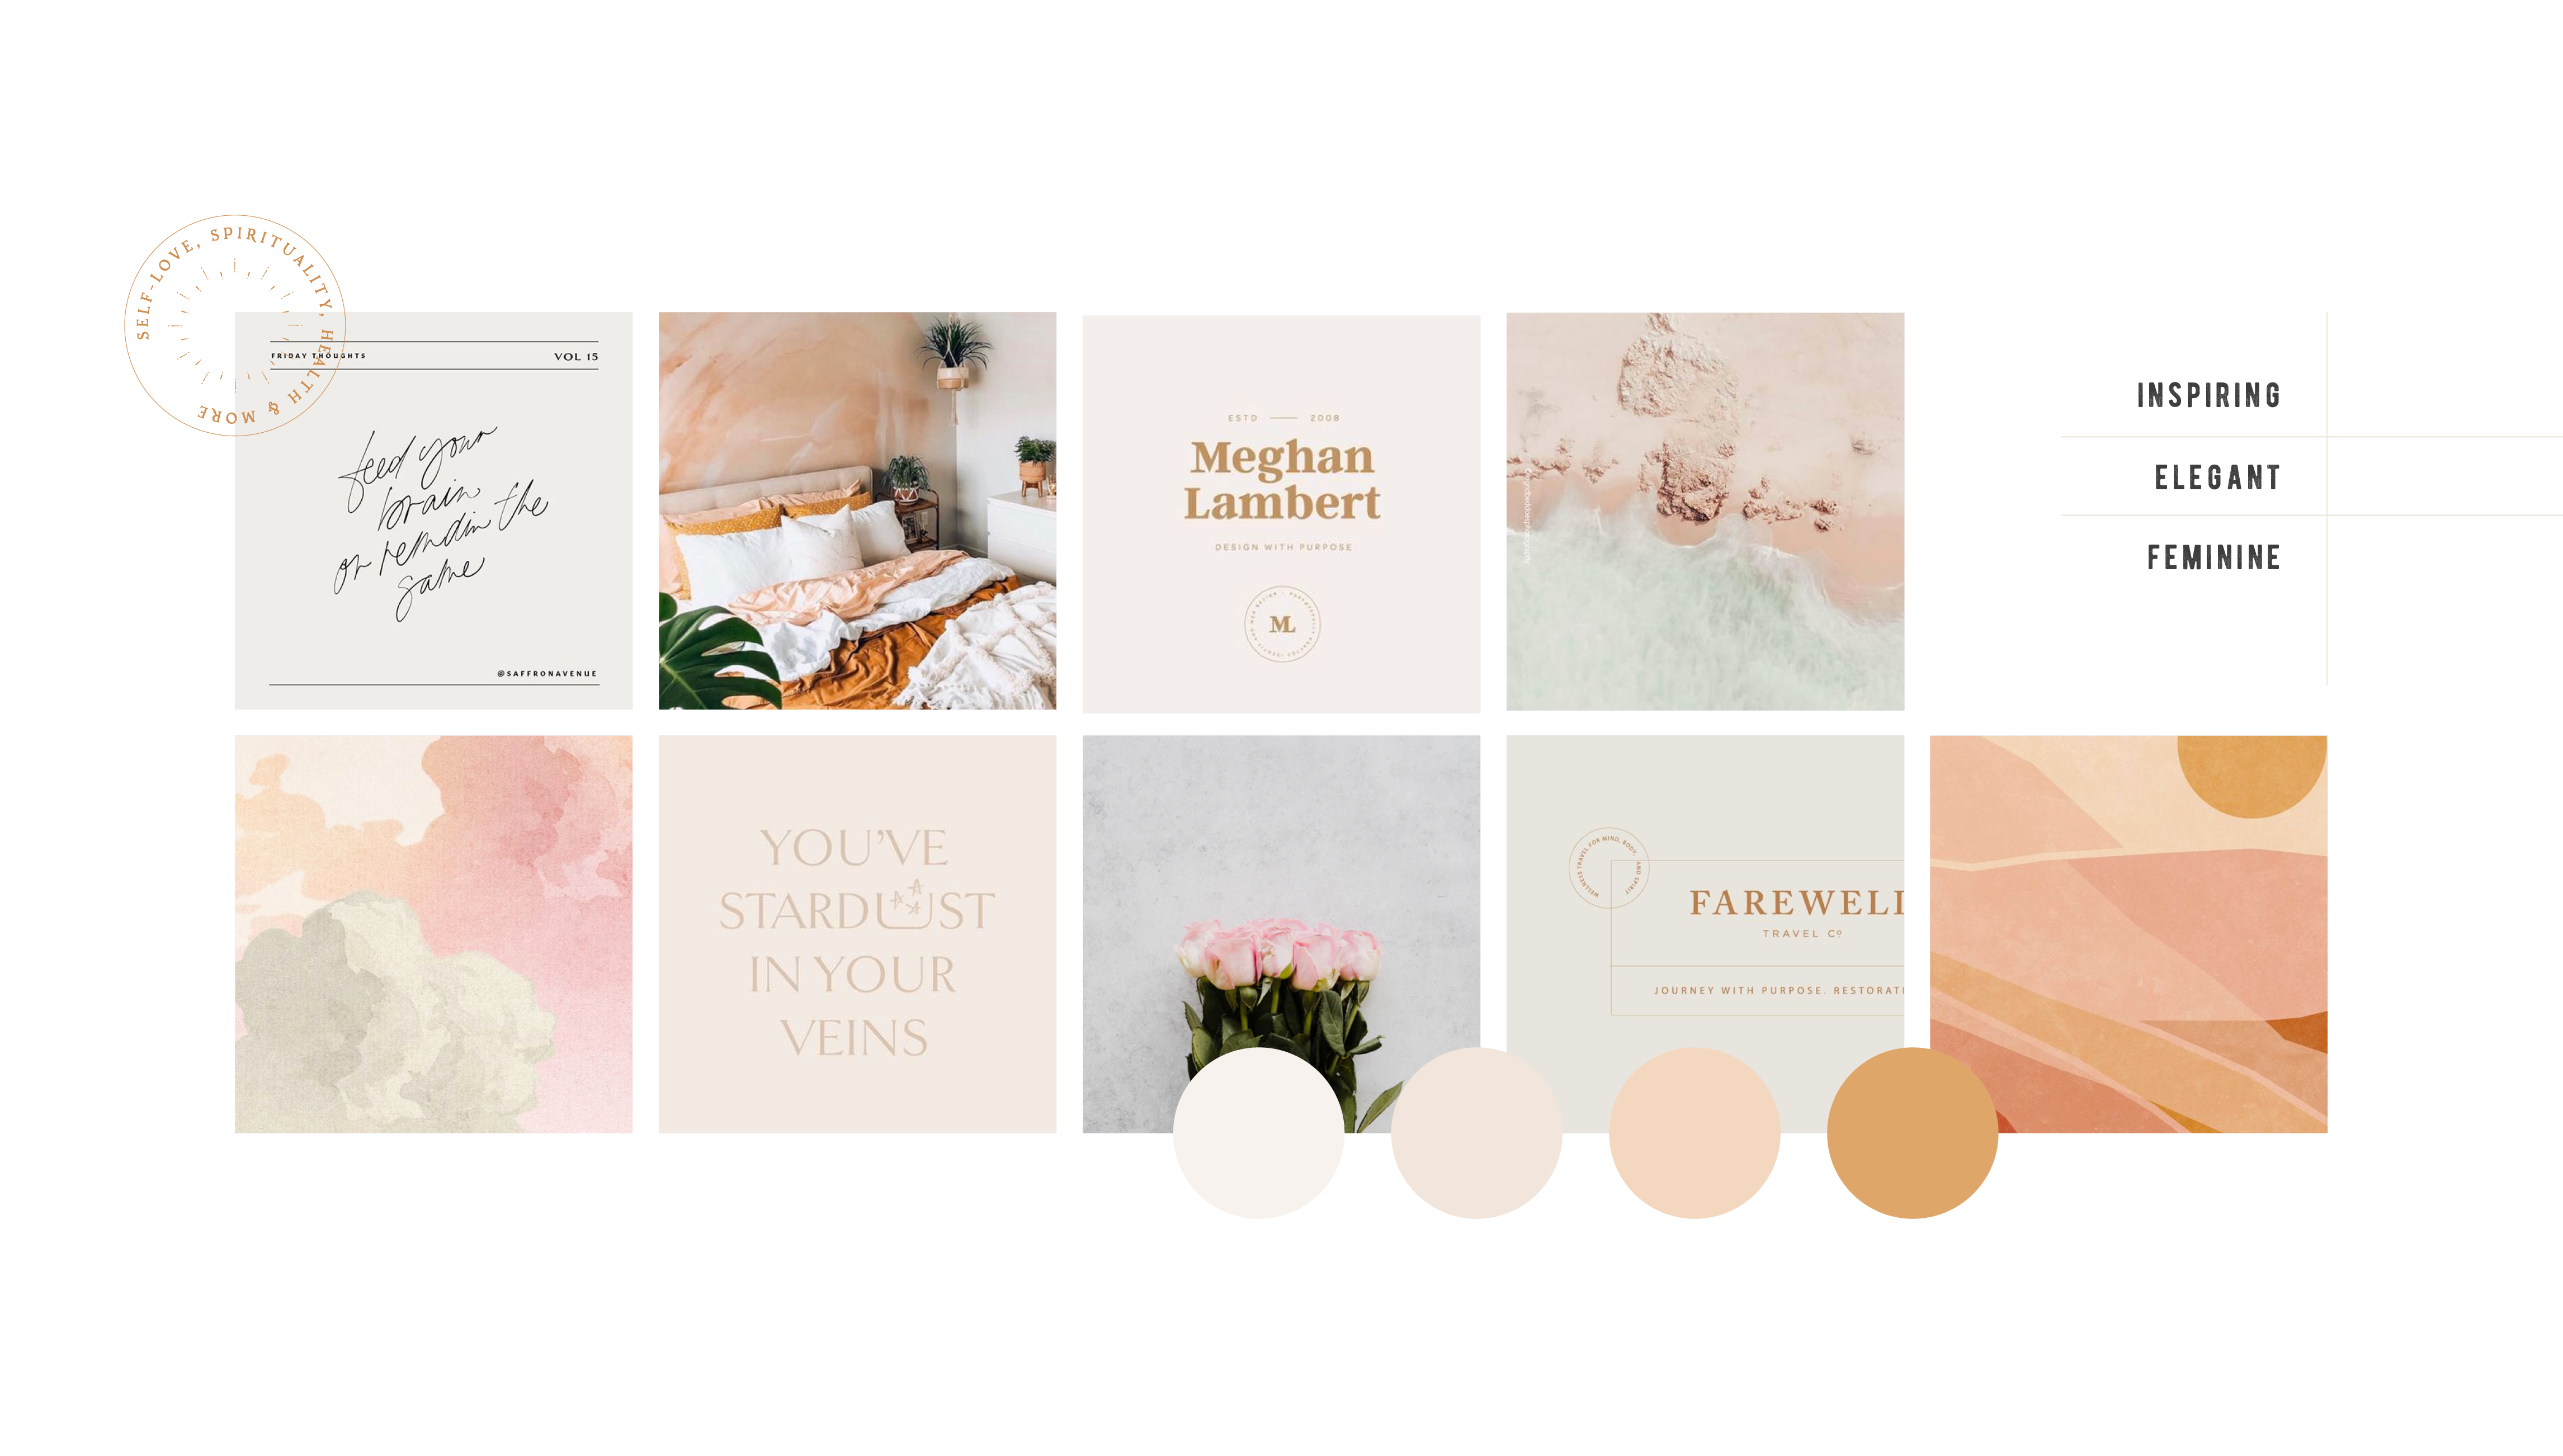 Moodboard and strategy for The Tiny Somethings, a lifestyle blog that shares little snippets of advice and experiences on different areas of life including personal growth, self-love, spirituality, health & wellness, and more - designed by Wiltshire-based graphic designer, Kaye Huett